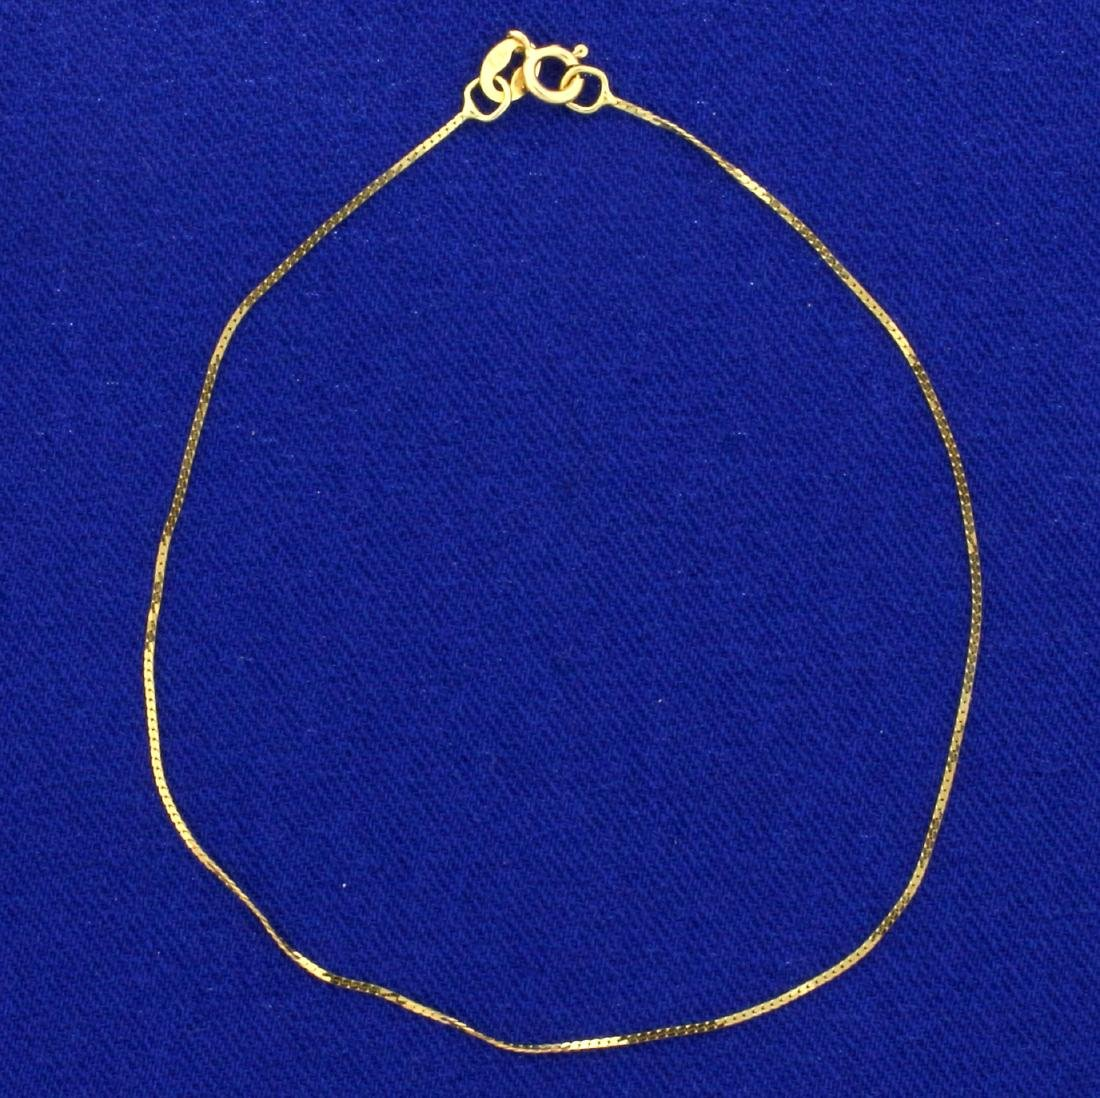 7 Inch S-Link Bracelet in 14K Yellow Gold